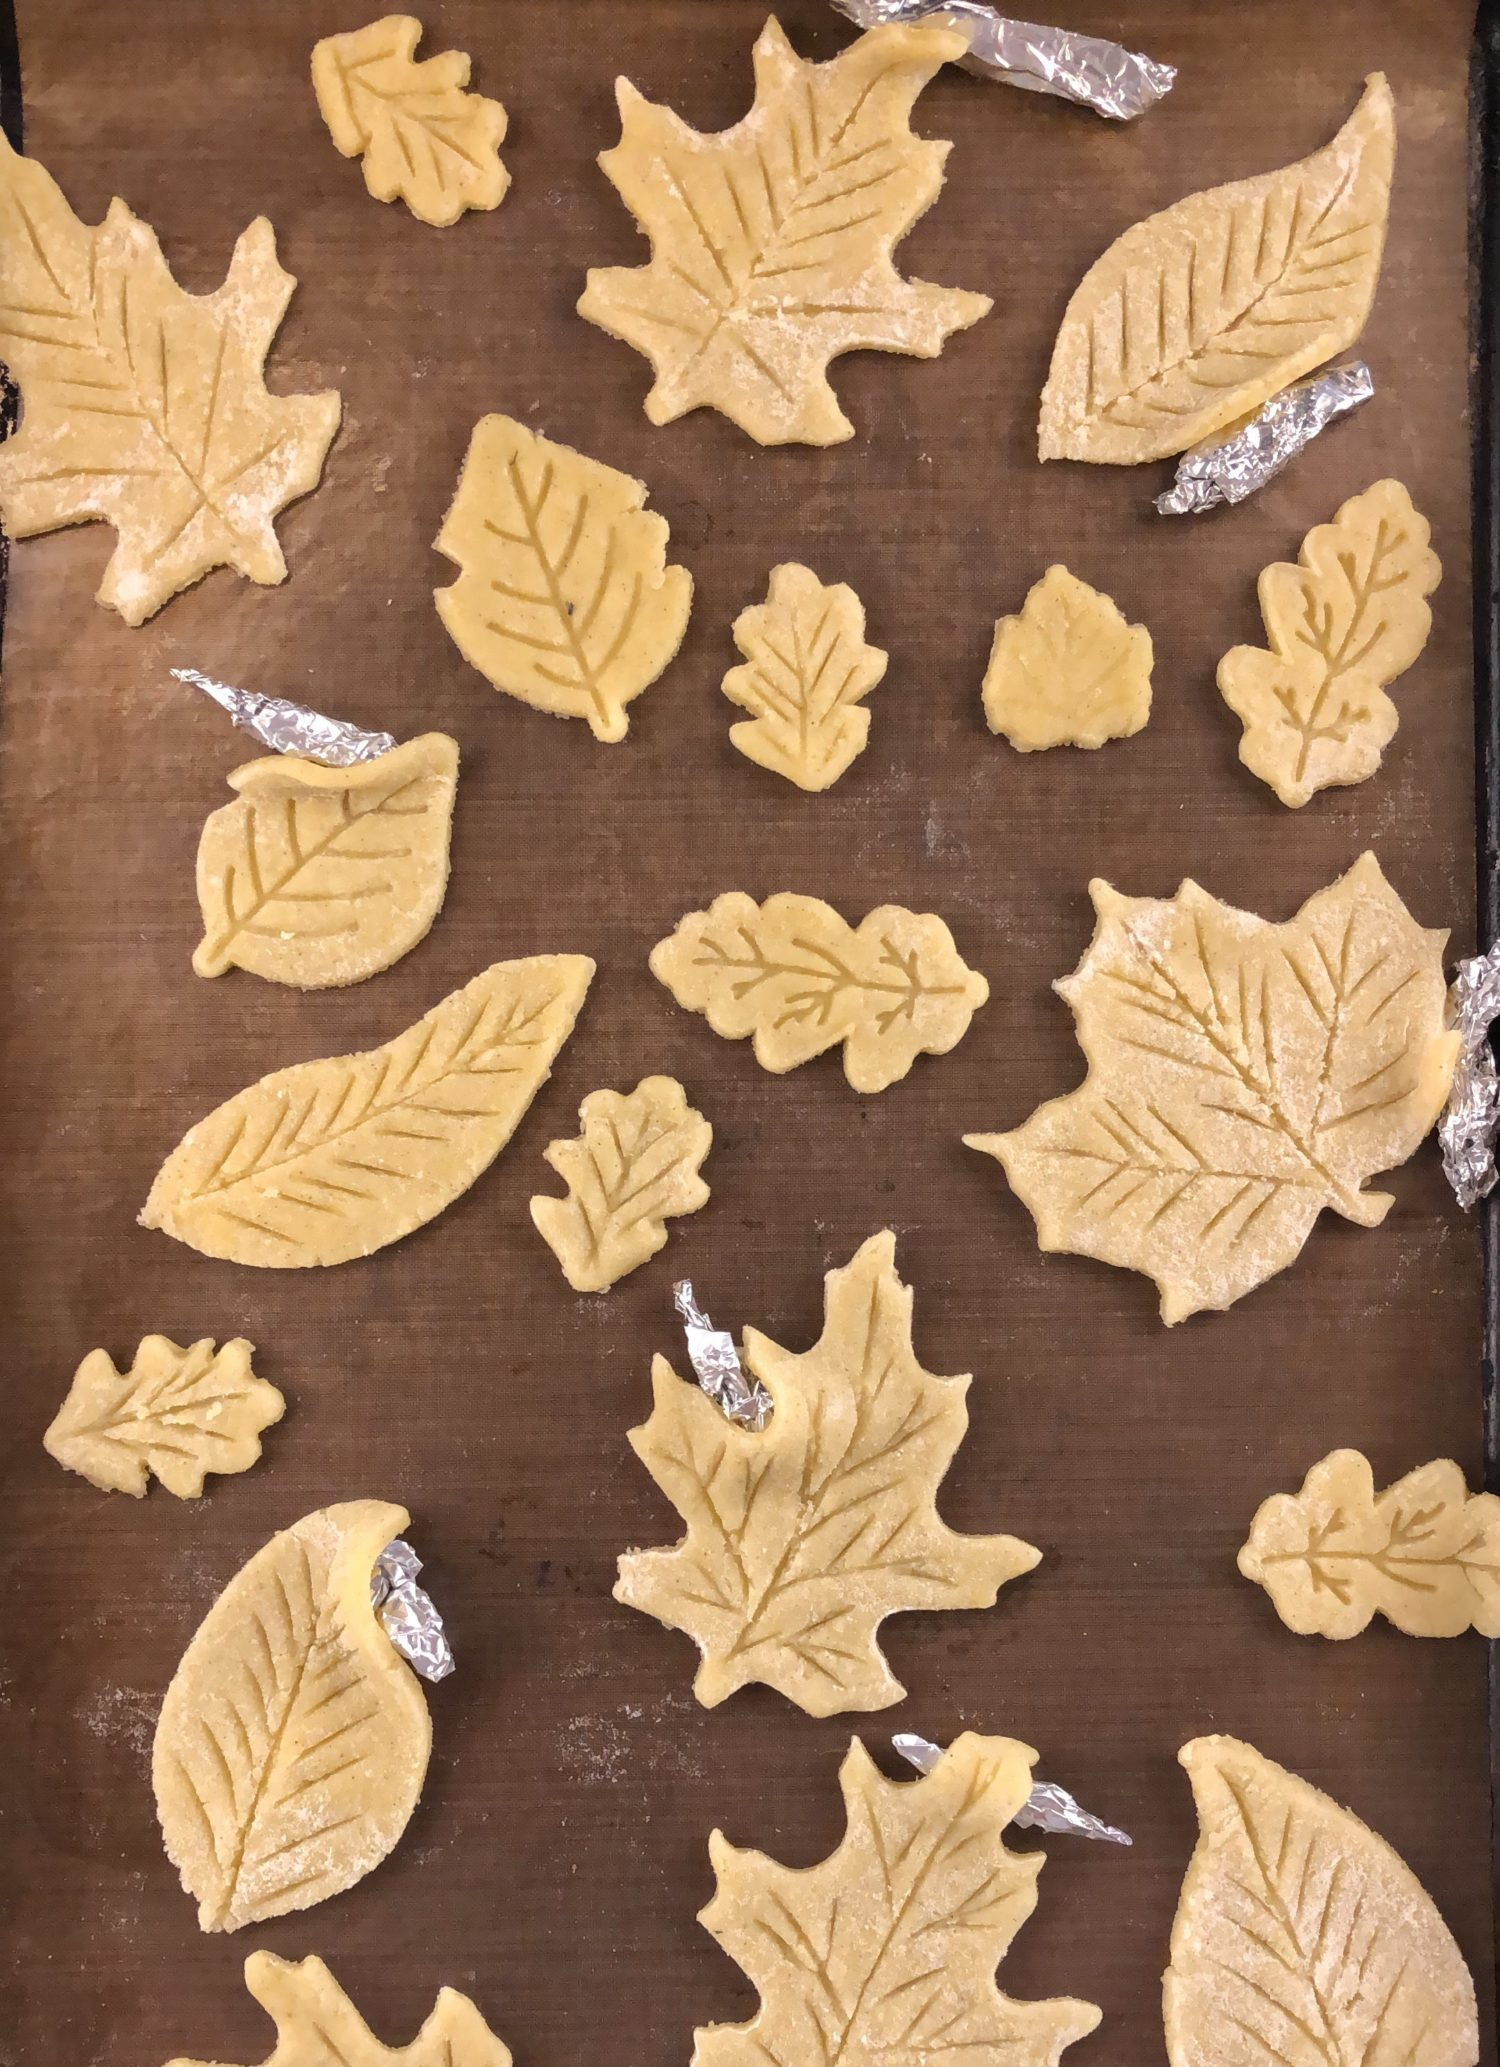 Leaf Pie cutouts before baking